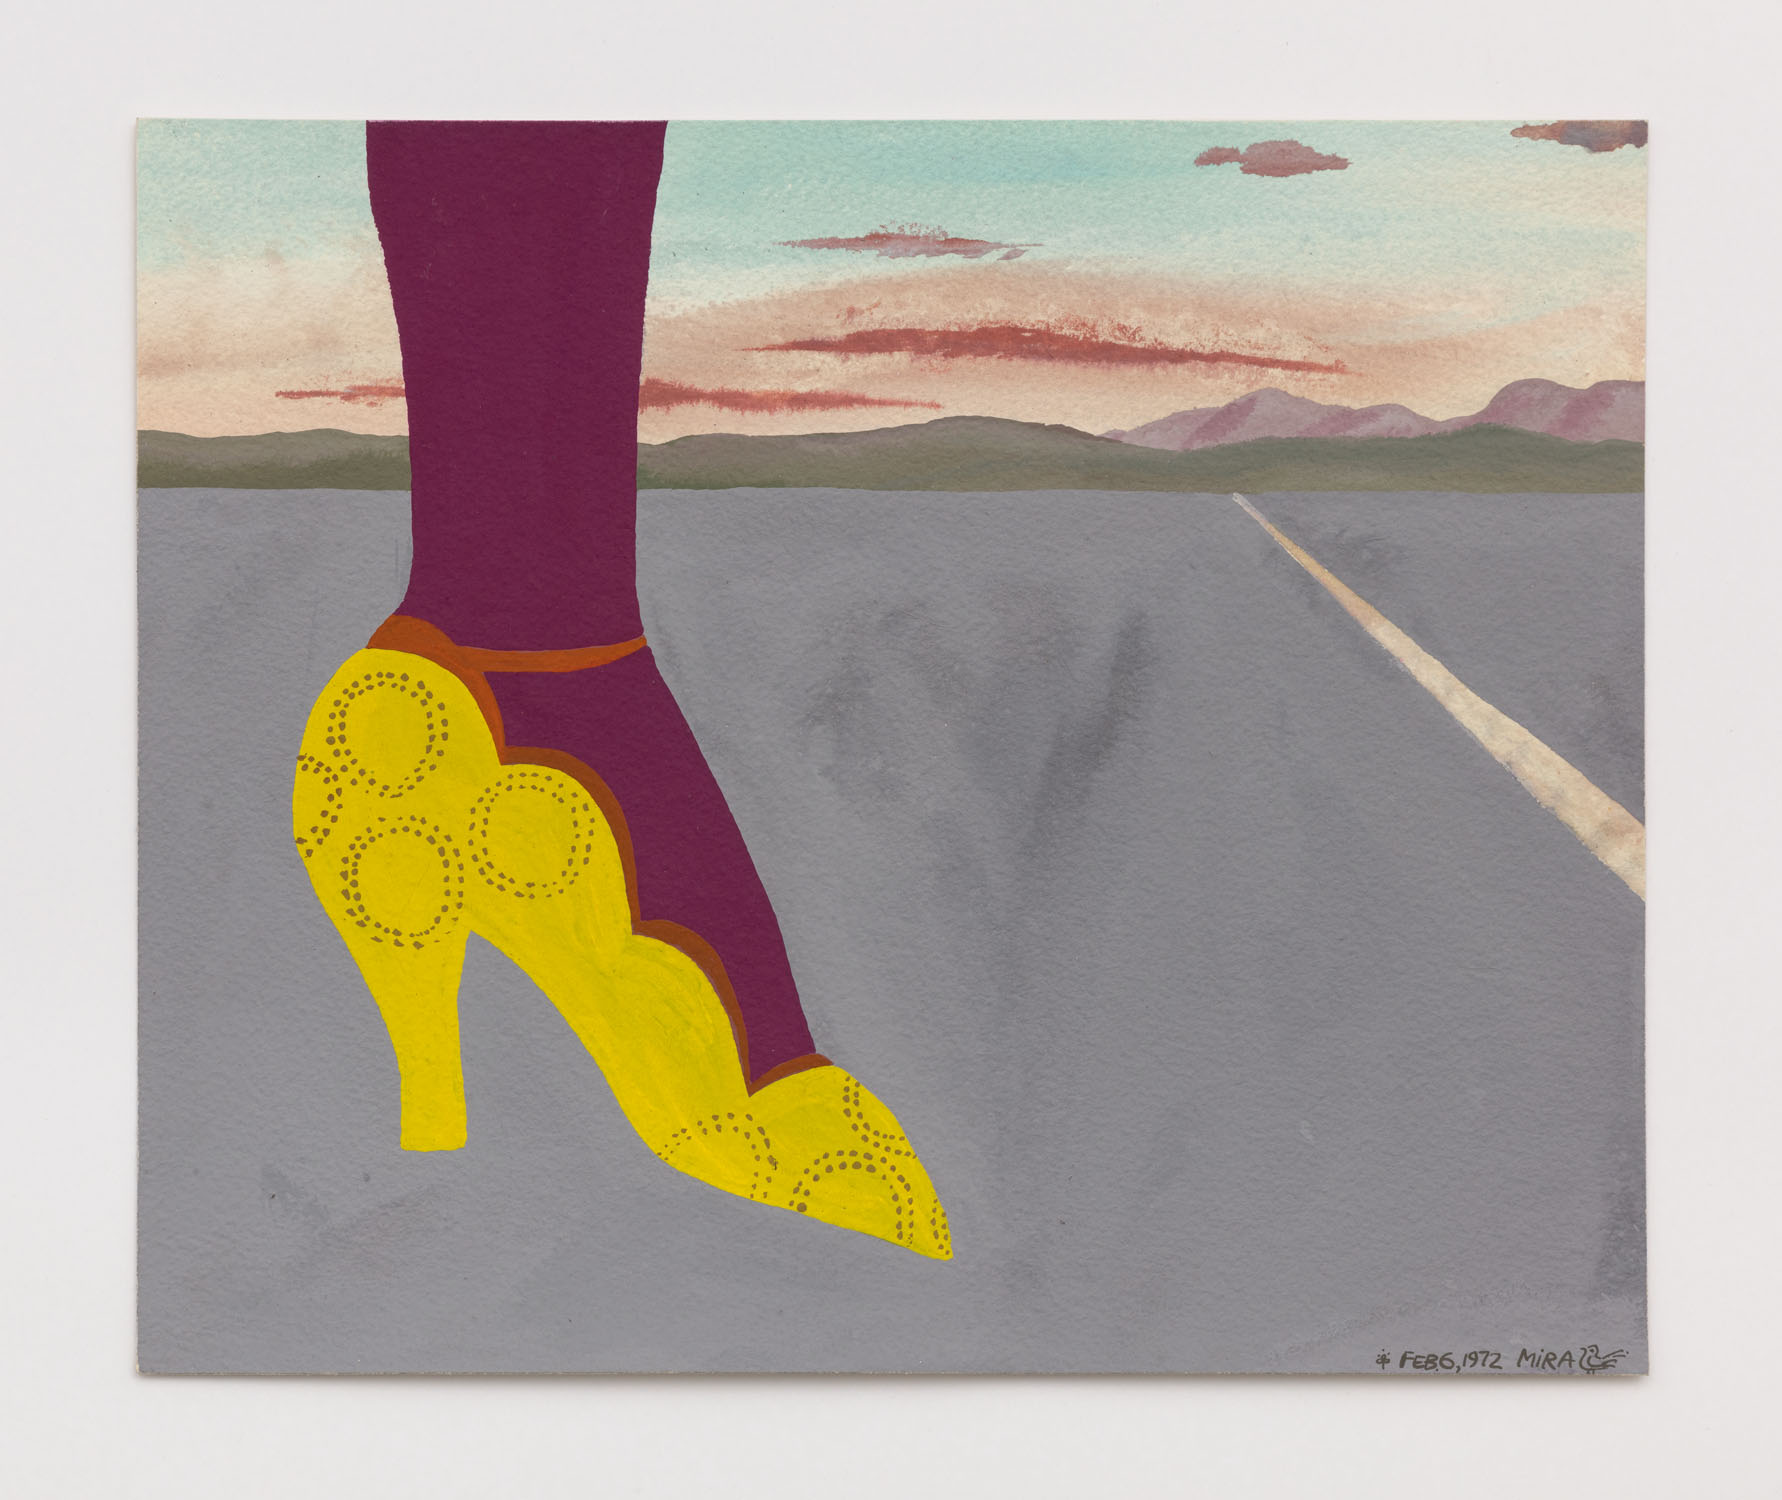 Mira Schor   Yellow Shoe , February 6, 1972  Gouache on paper  11.5 x 13.75 inches